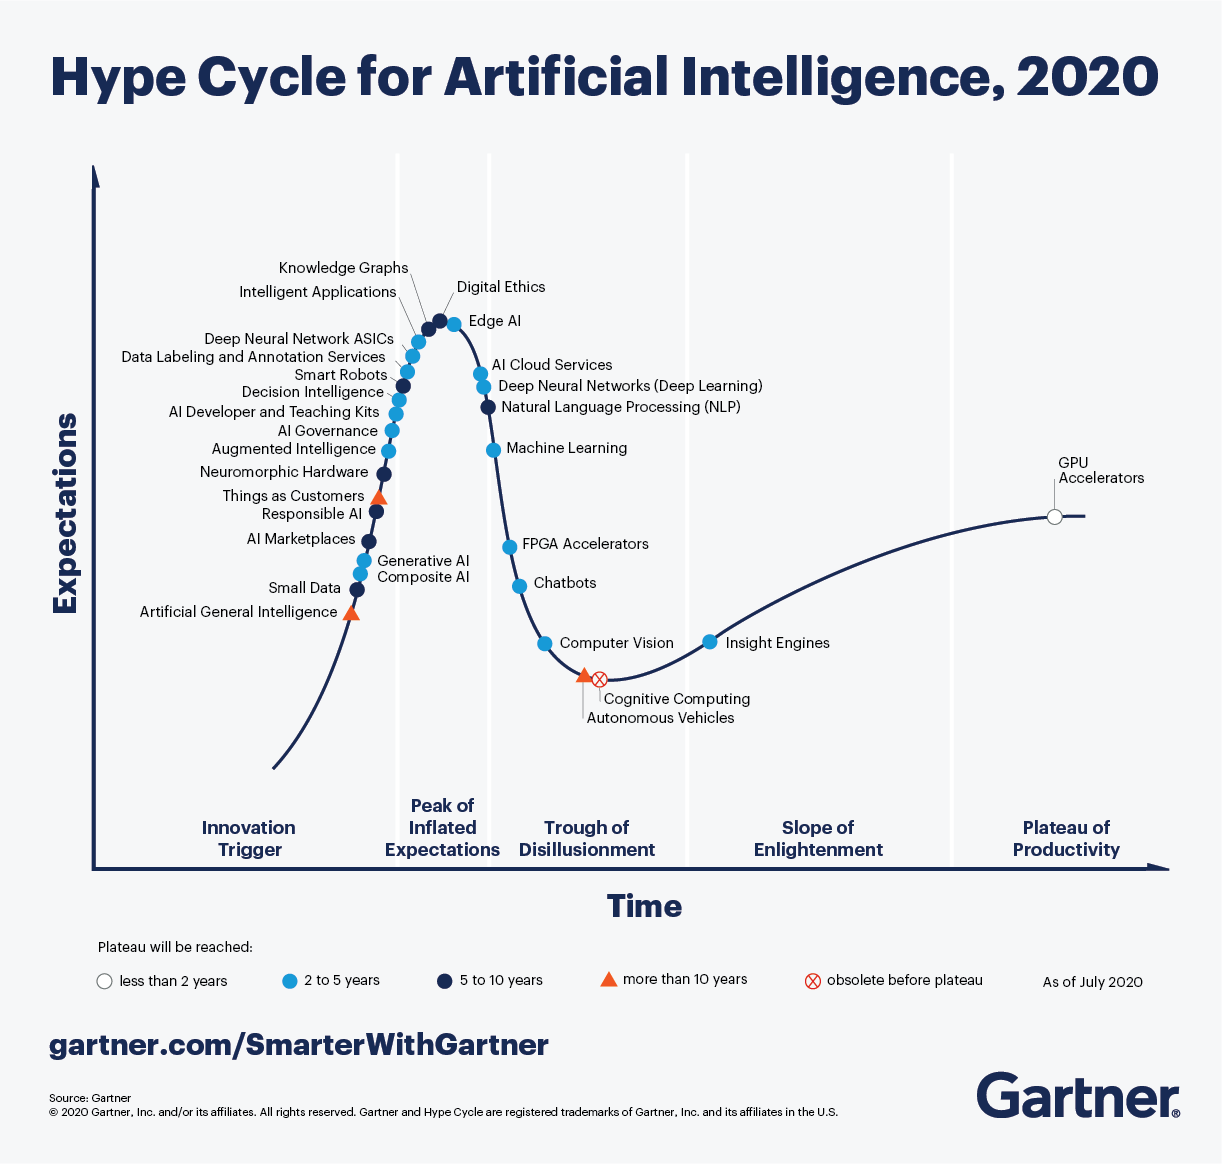 Gartner_Hype_Cycle_for_Artificial_Intelligence_2020.png